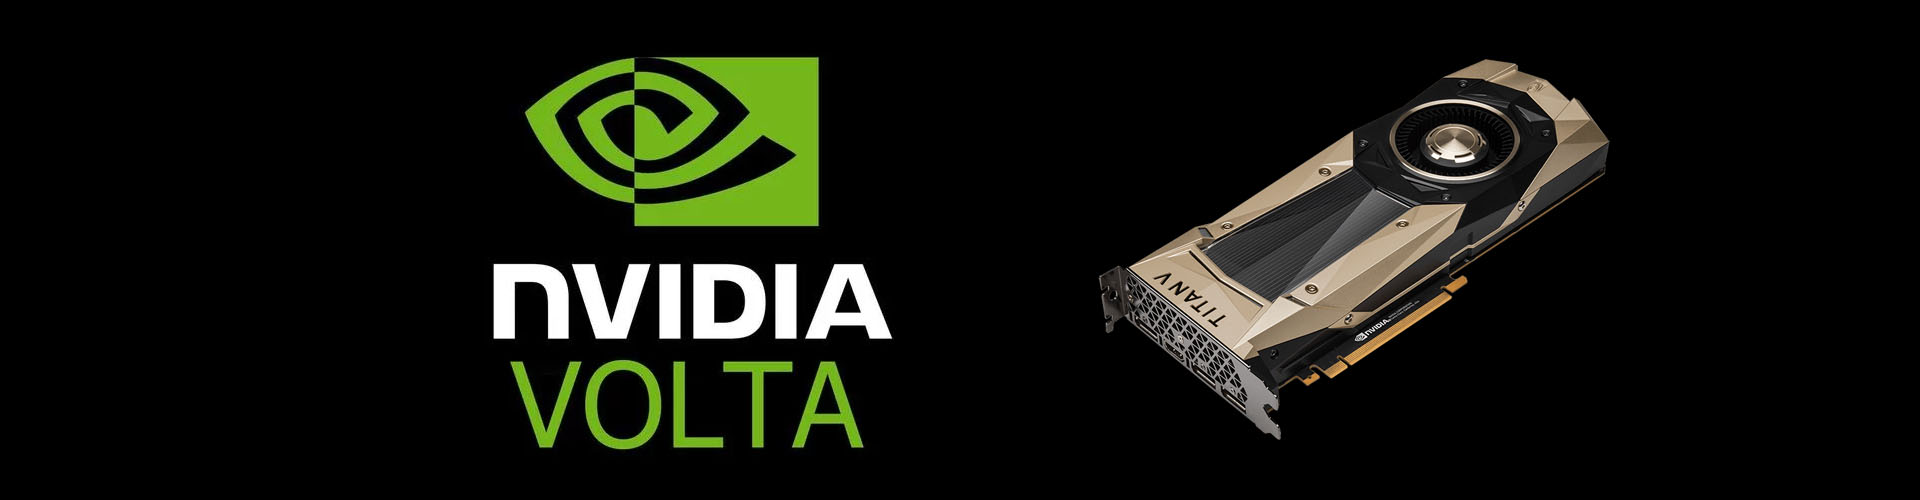 NVIDIA Volta – Release Date, Specifications, Price, and Performance